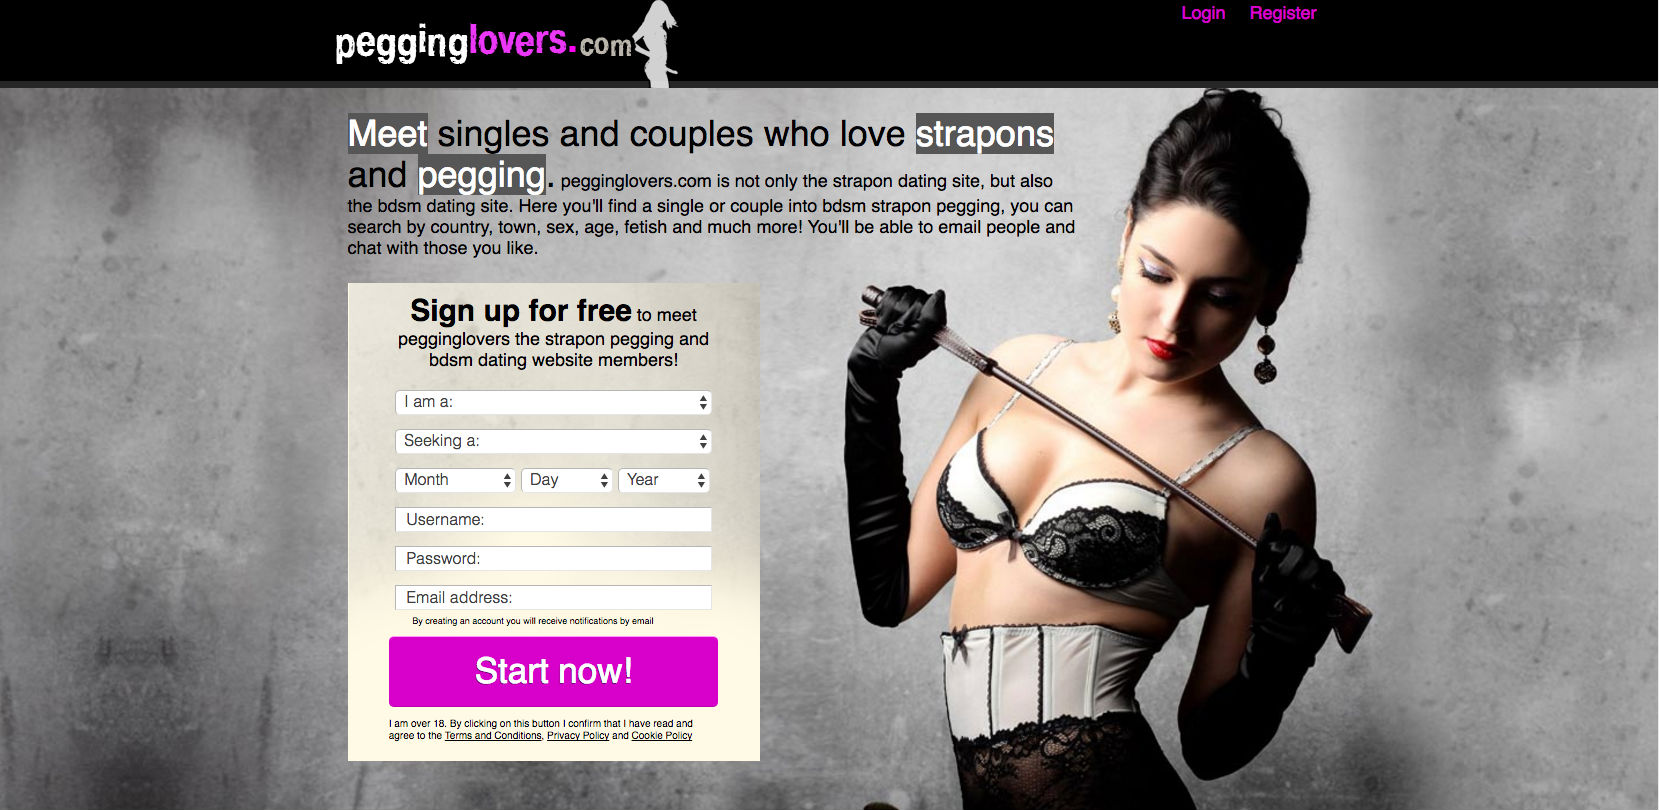 pegging lovers meet on pegginglovers.com